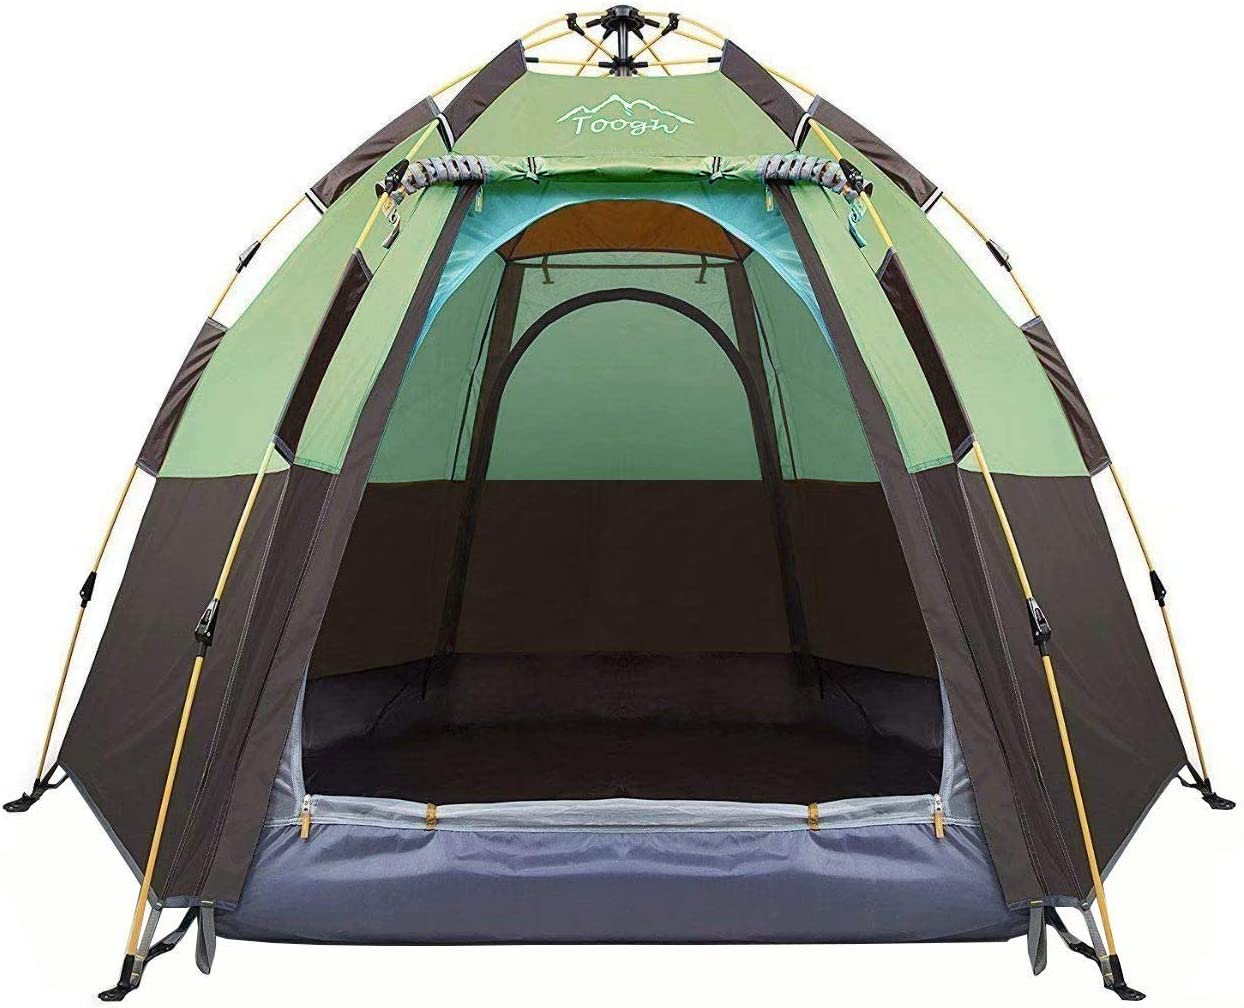 Toogh Store 3-4 Person Pop-Up Camping Tent